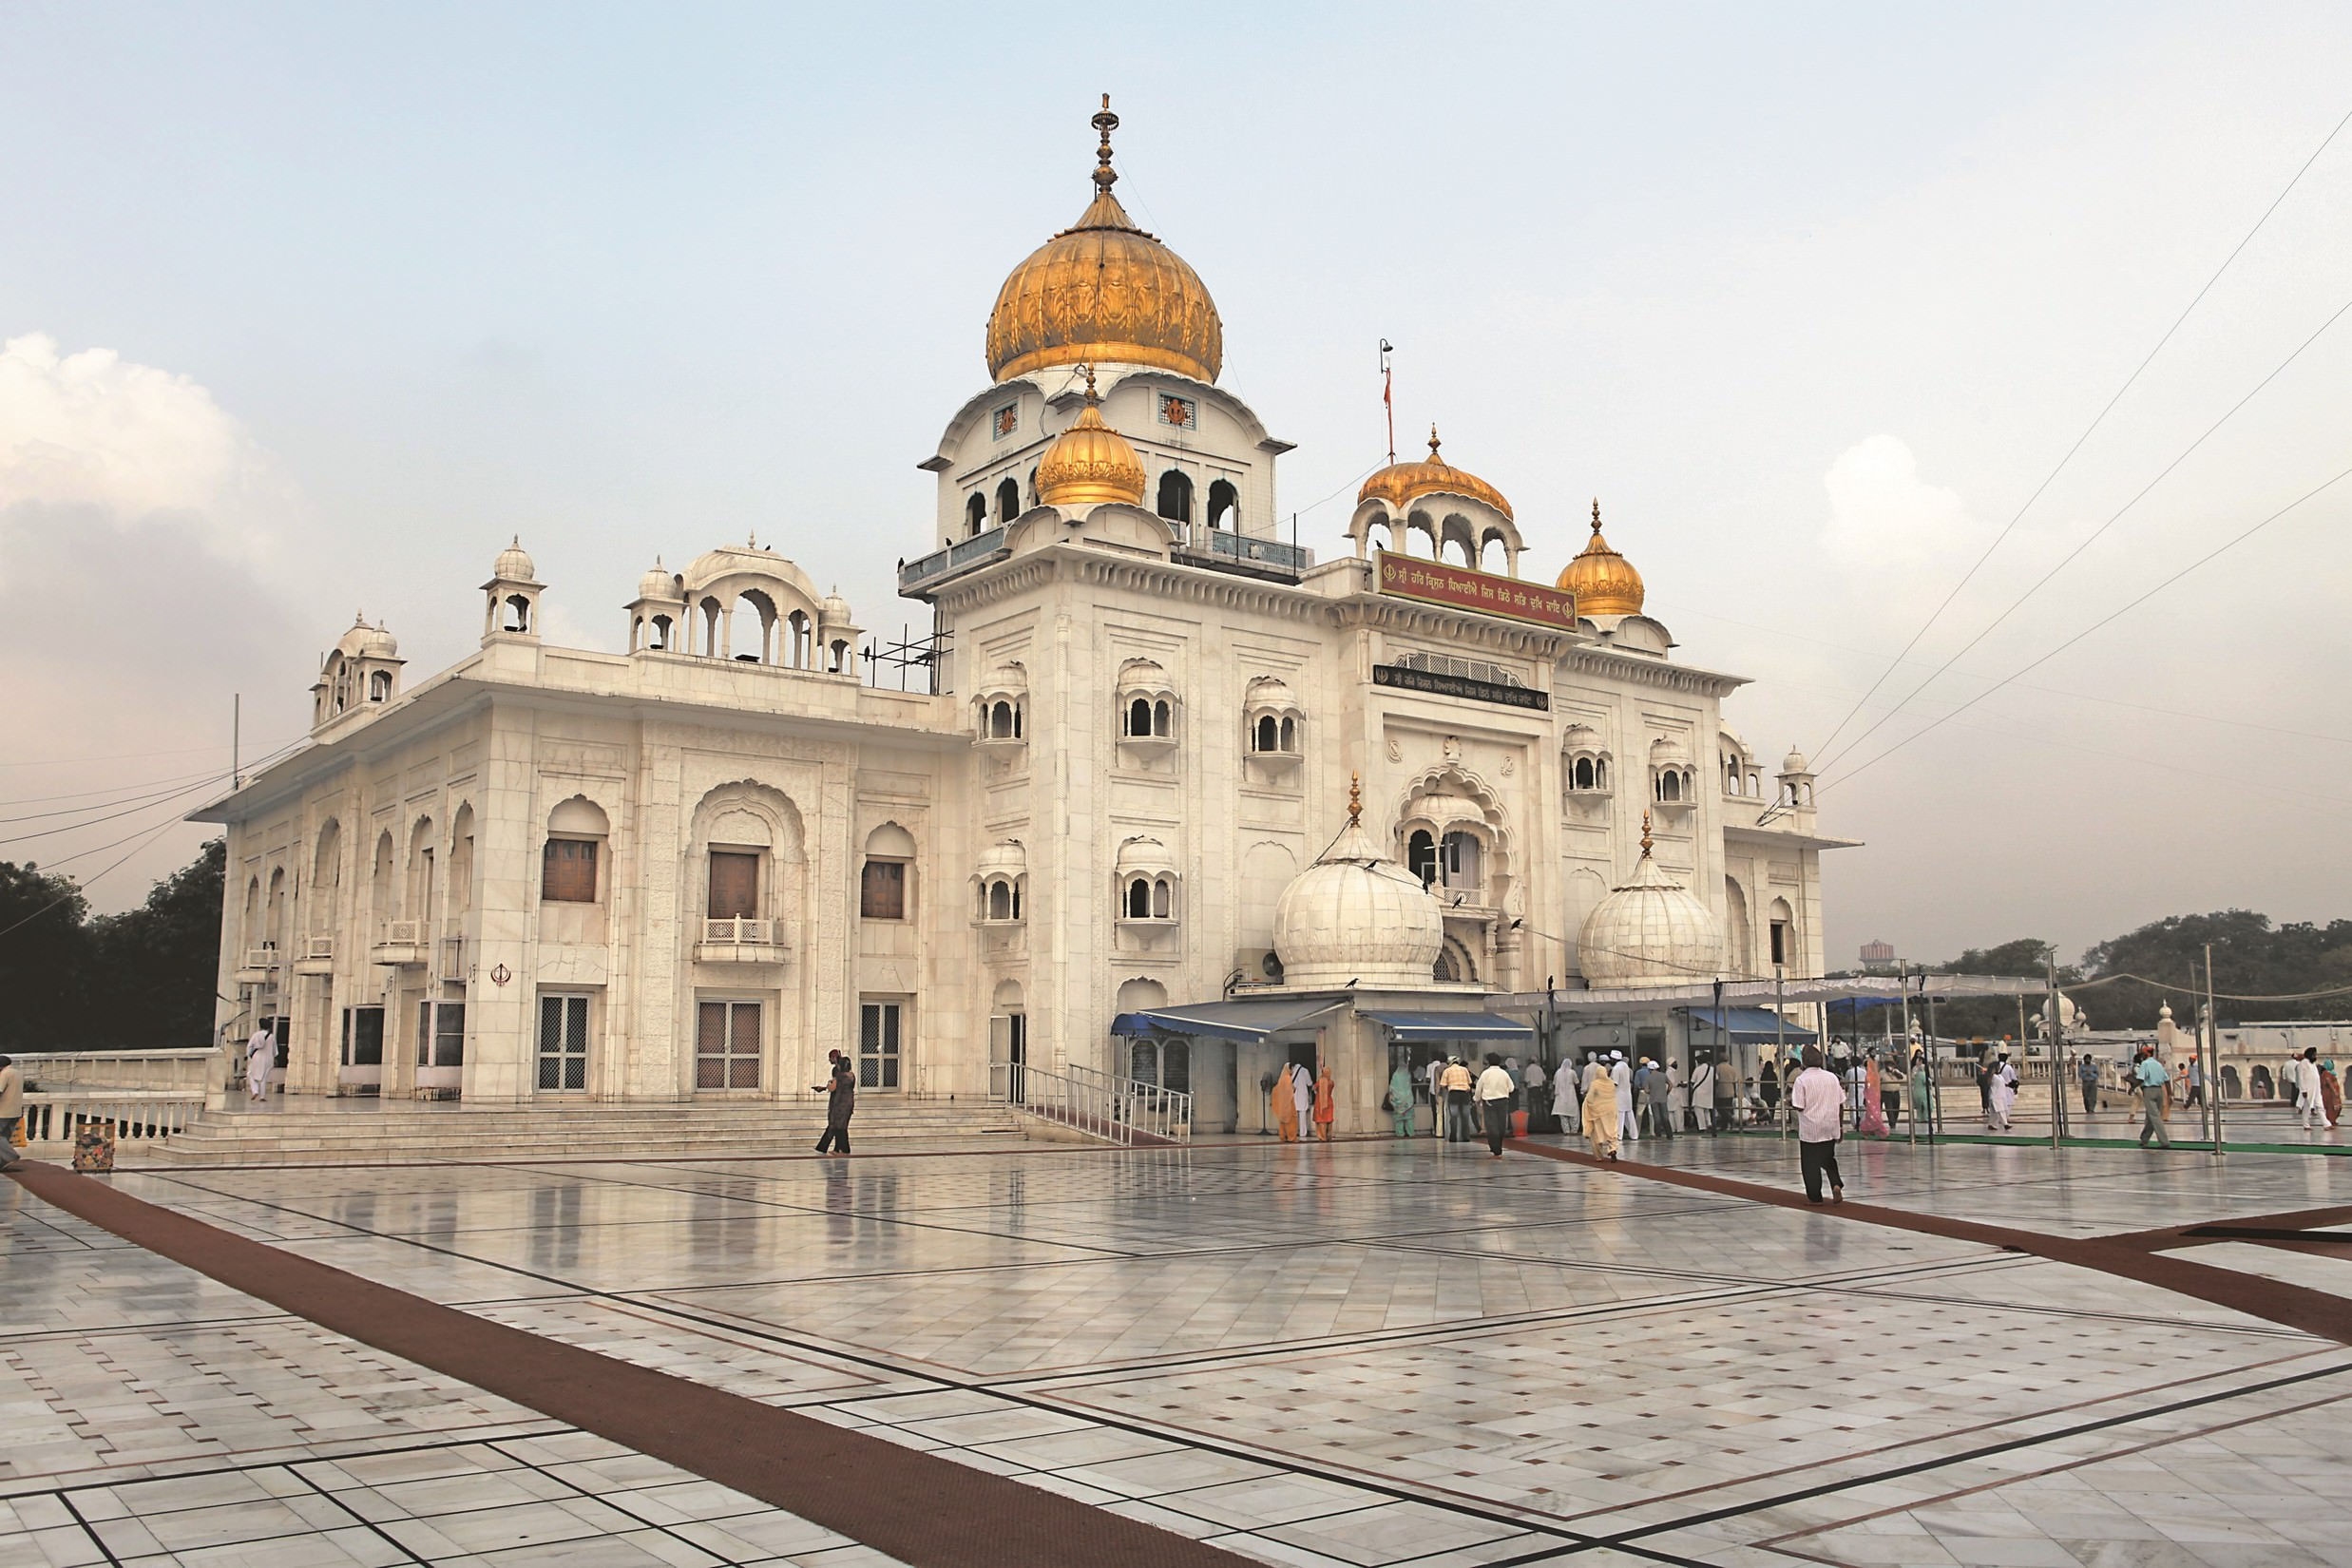 Gurudwara Bangla Sahib MyConnaughtplace